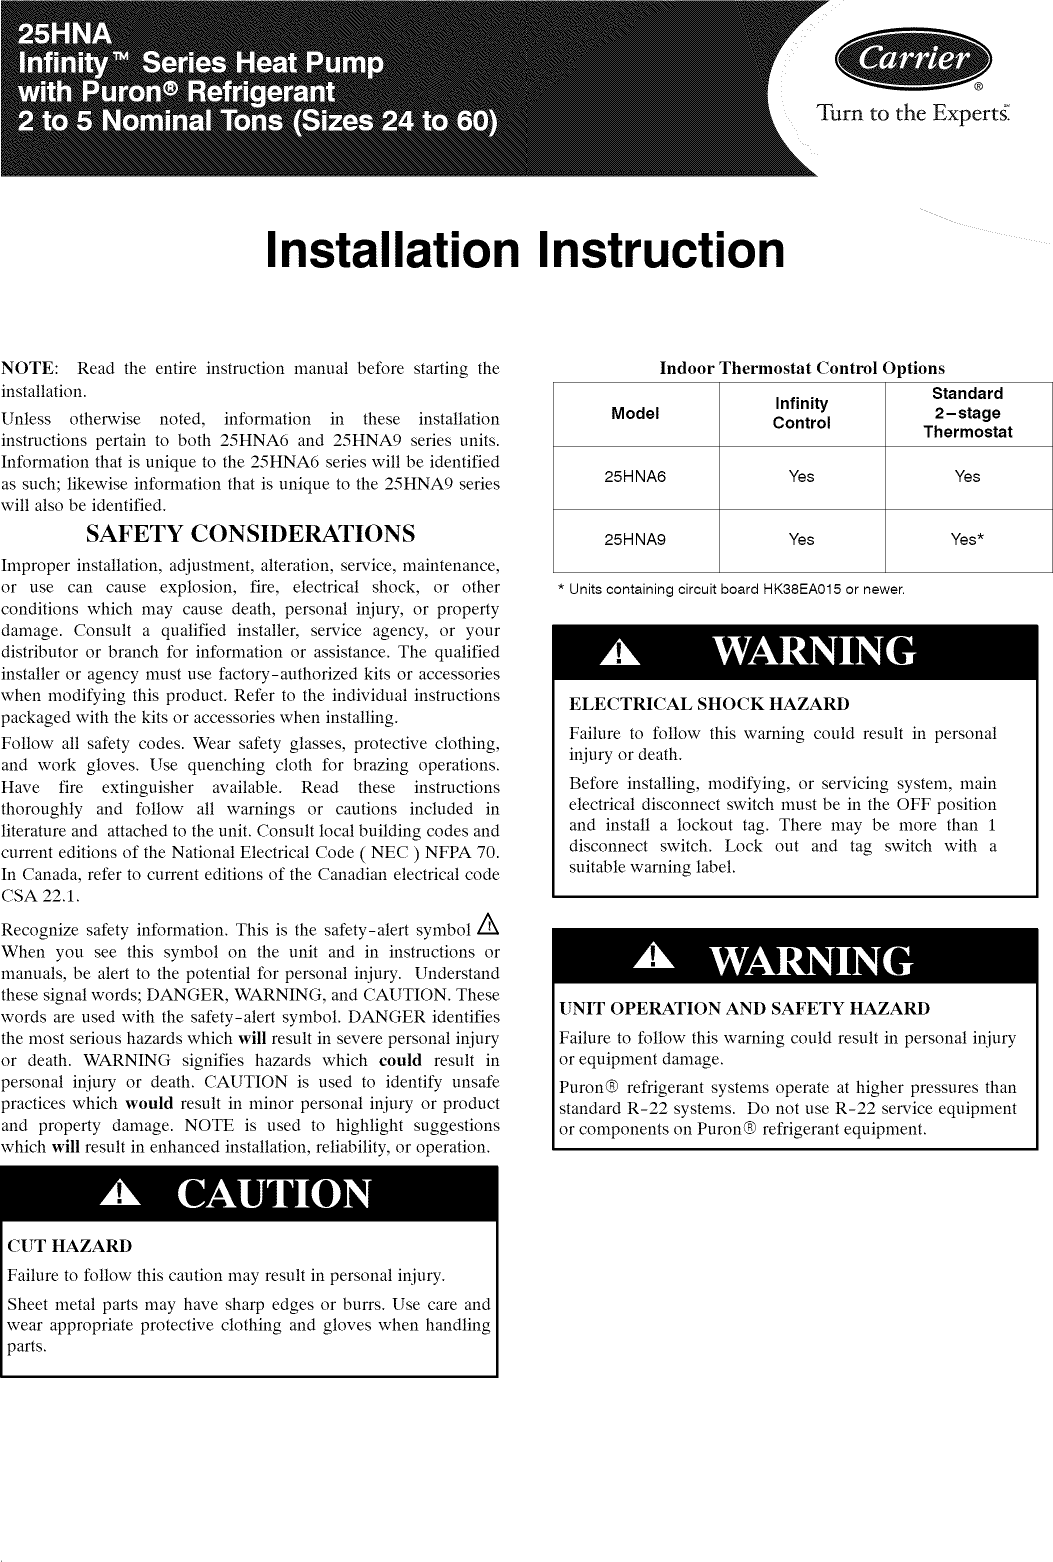 carrier infinity thermostat instructions